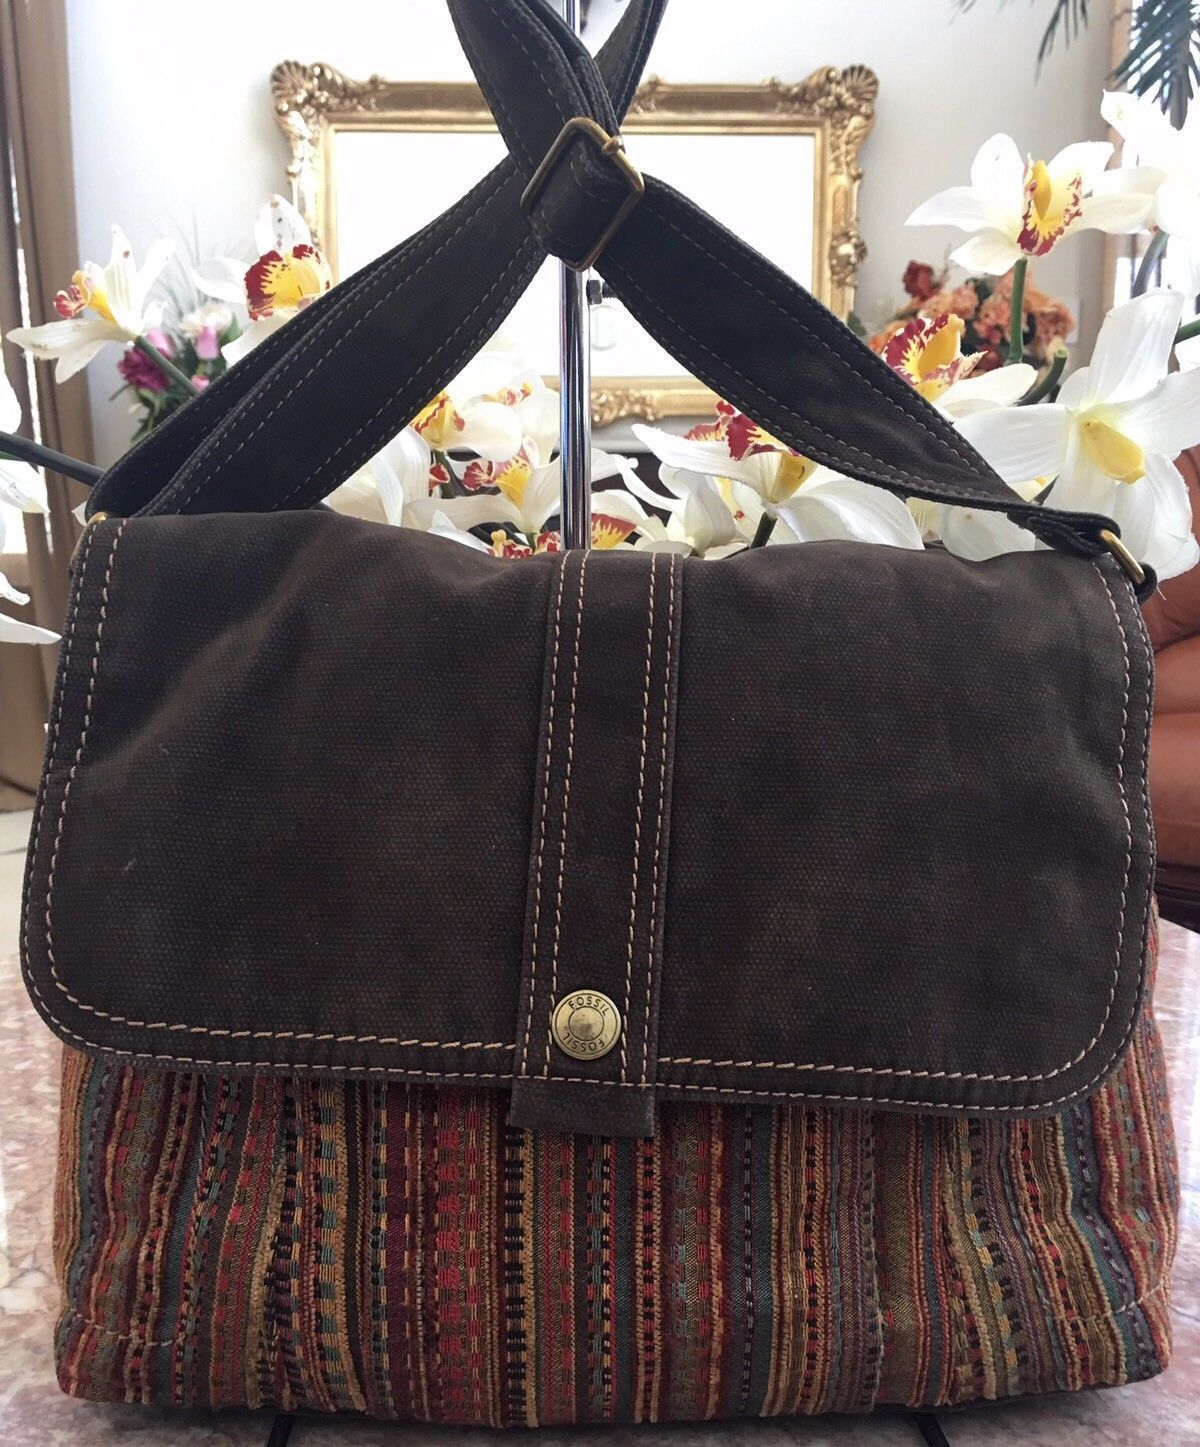 Fossil Multi-color Stripe Canvas Suede Flap Messenger Medium Shoulder Bag EUC | eBay